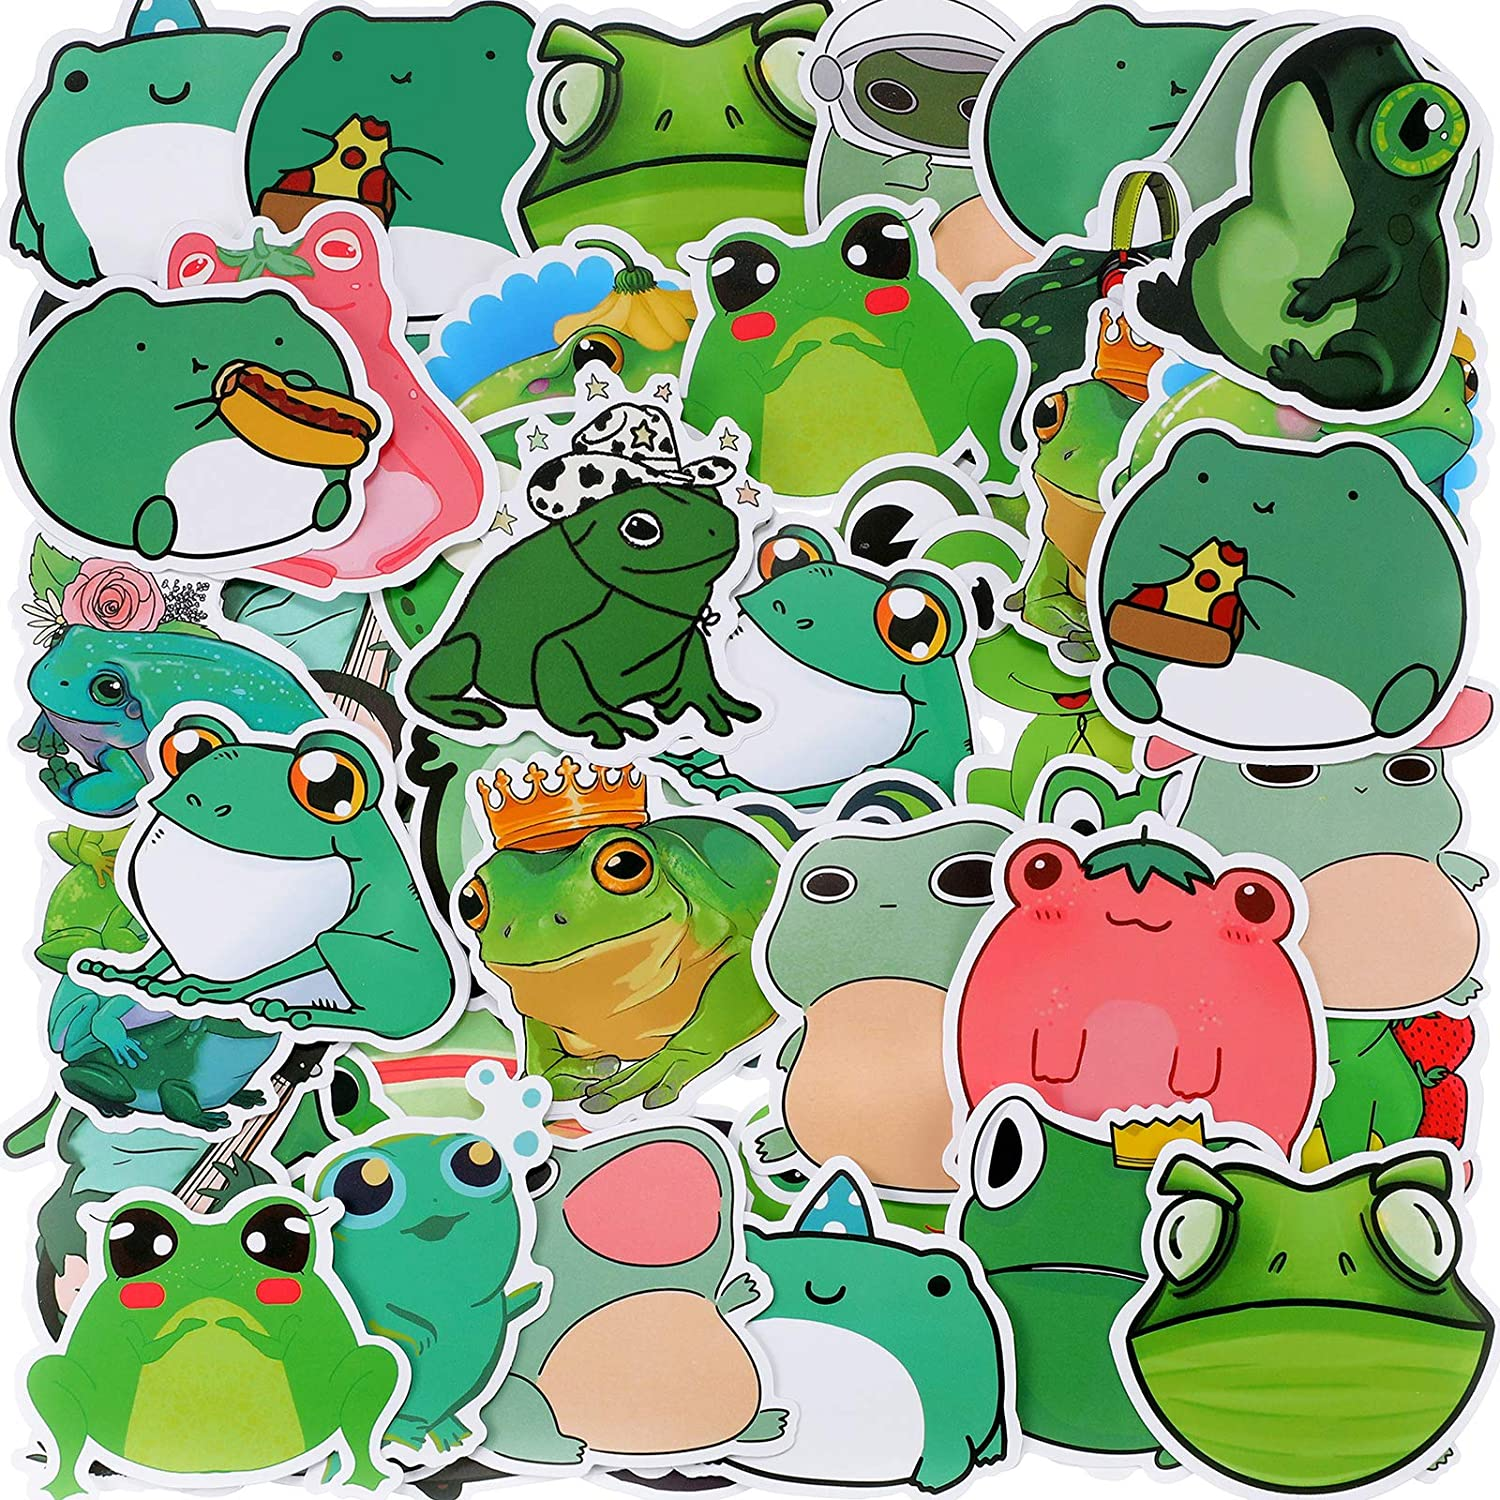 100 Pieces Frog Stickers Vinyl Frog Decals Cute Frog Laptop Stickers Cartoon Frog Waterproof Decorative Stickers for Computer, Luggage, Guitar, Bottle, Refrigerator